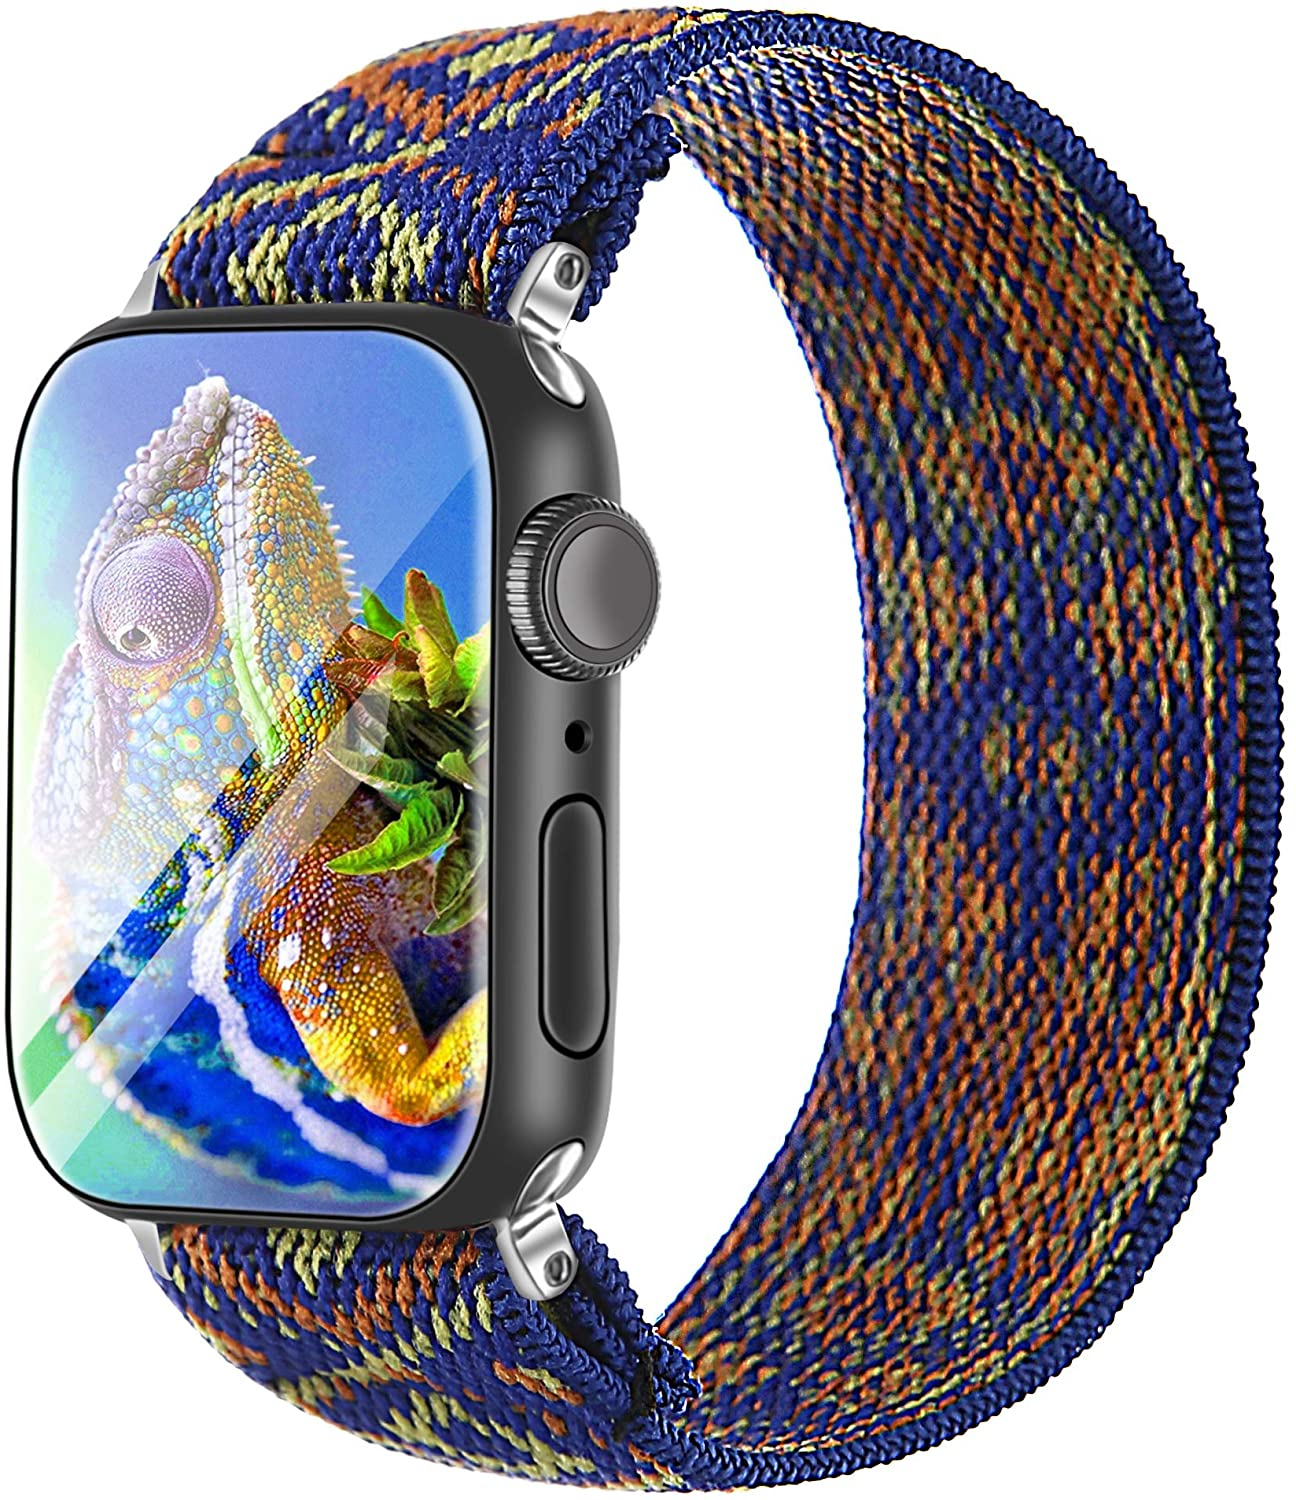 Elastic Strap/Band for Apple Watch, Cloth Wool Band Wristband Strap Bracelet Women Scrunchies Compatible with Iwatch Band Series 1 2 3 4 5 (Blue-1, 42mm/44mm)